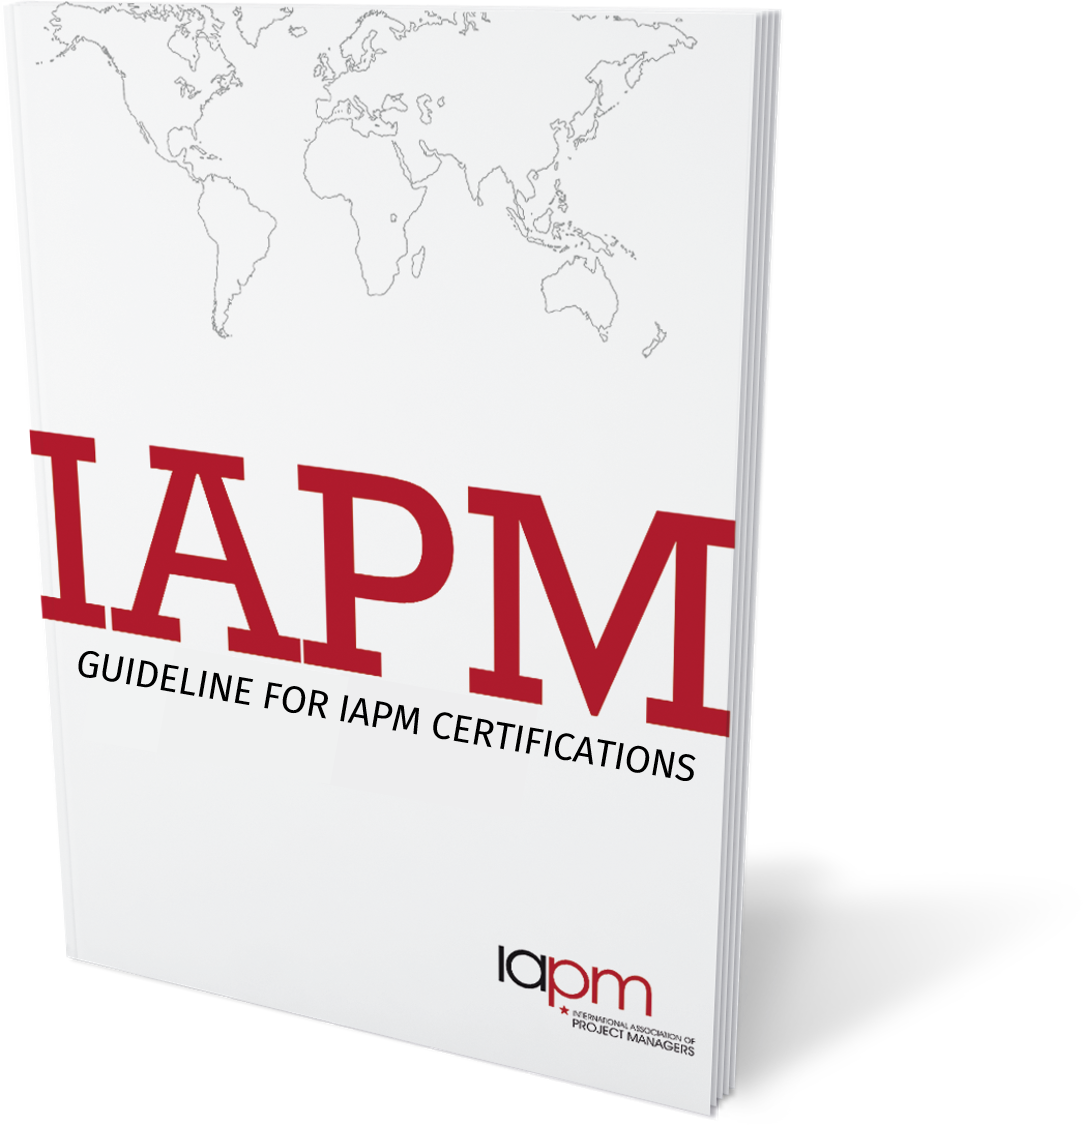 IAPM's certification guideline: What is the IAPM certification process?